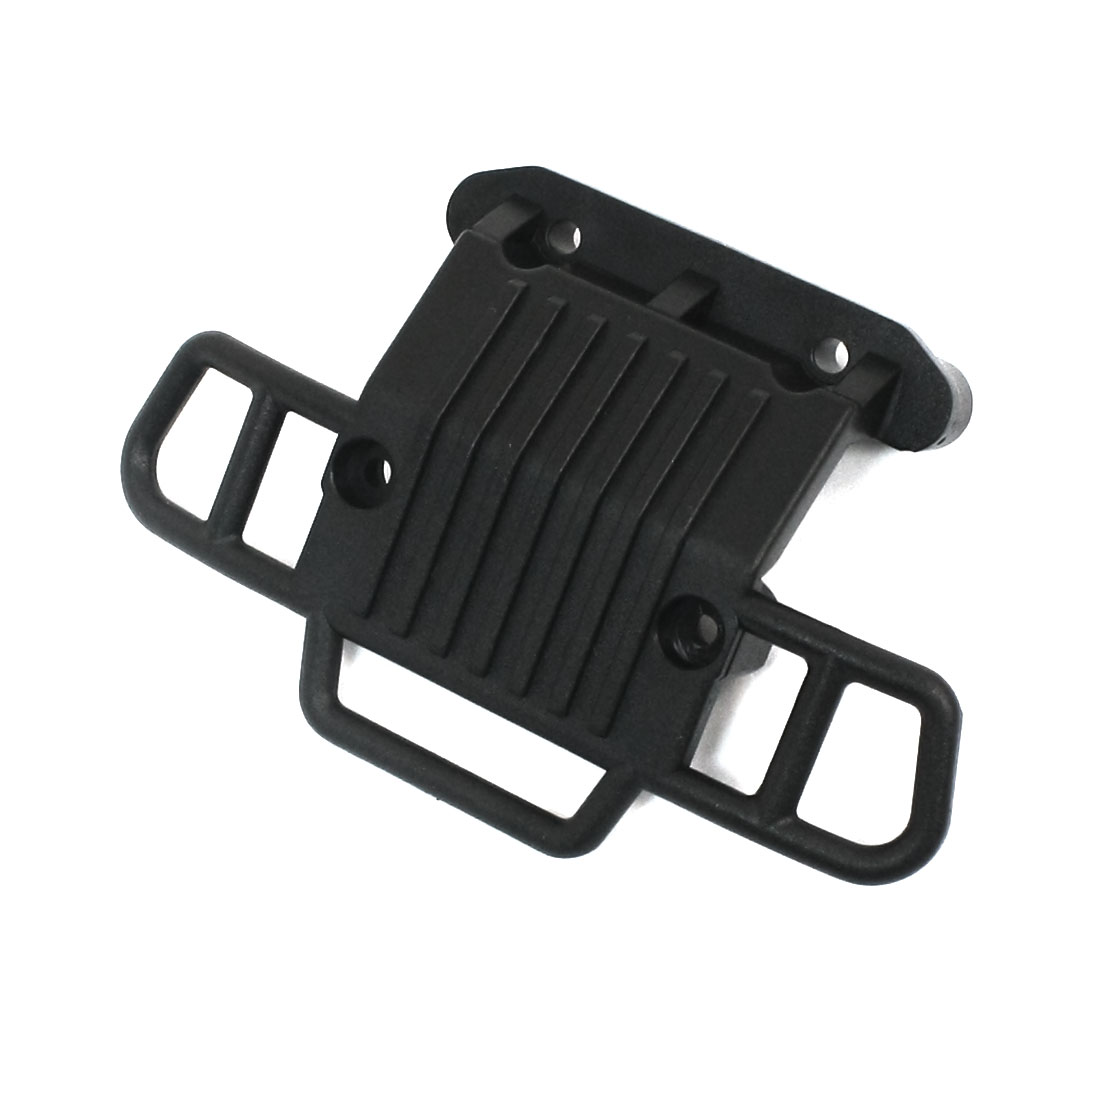 DIY Assembly Parts 08062 1:16 Scale Front Bumper for RC Model Car Buggy